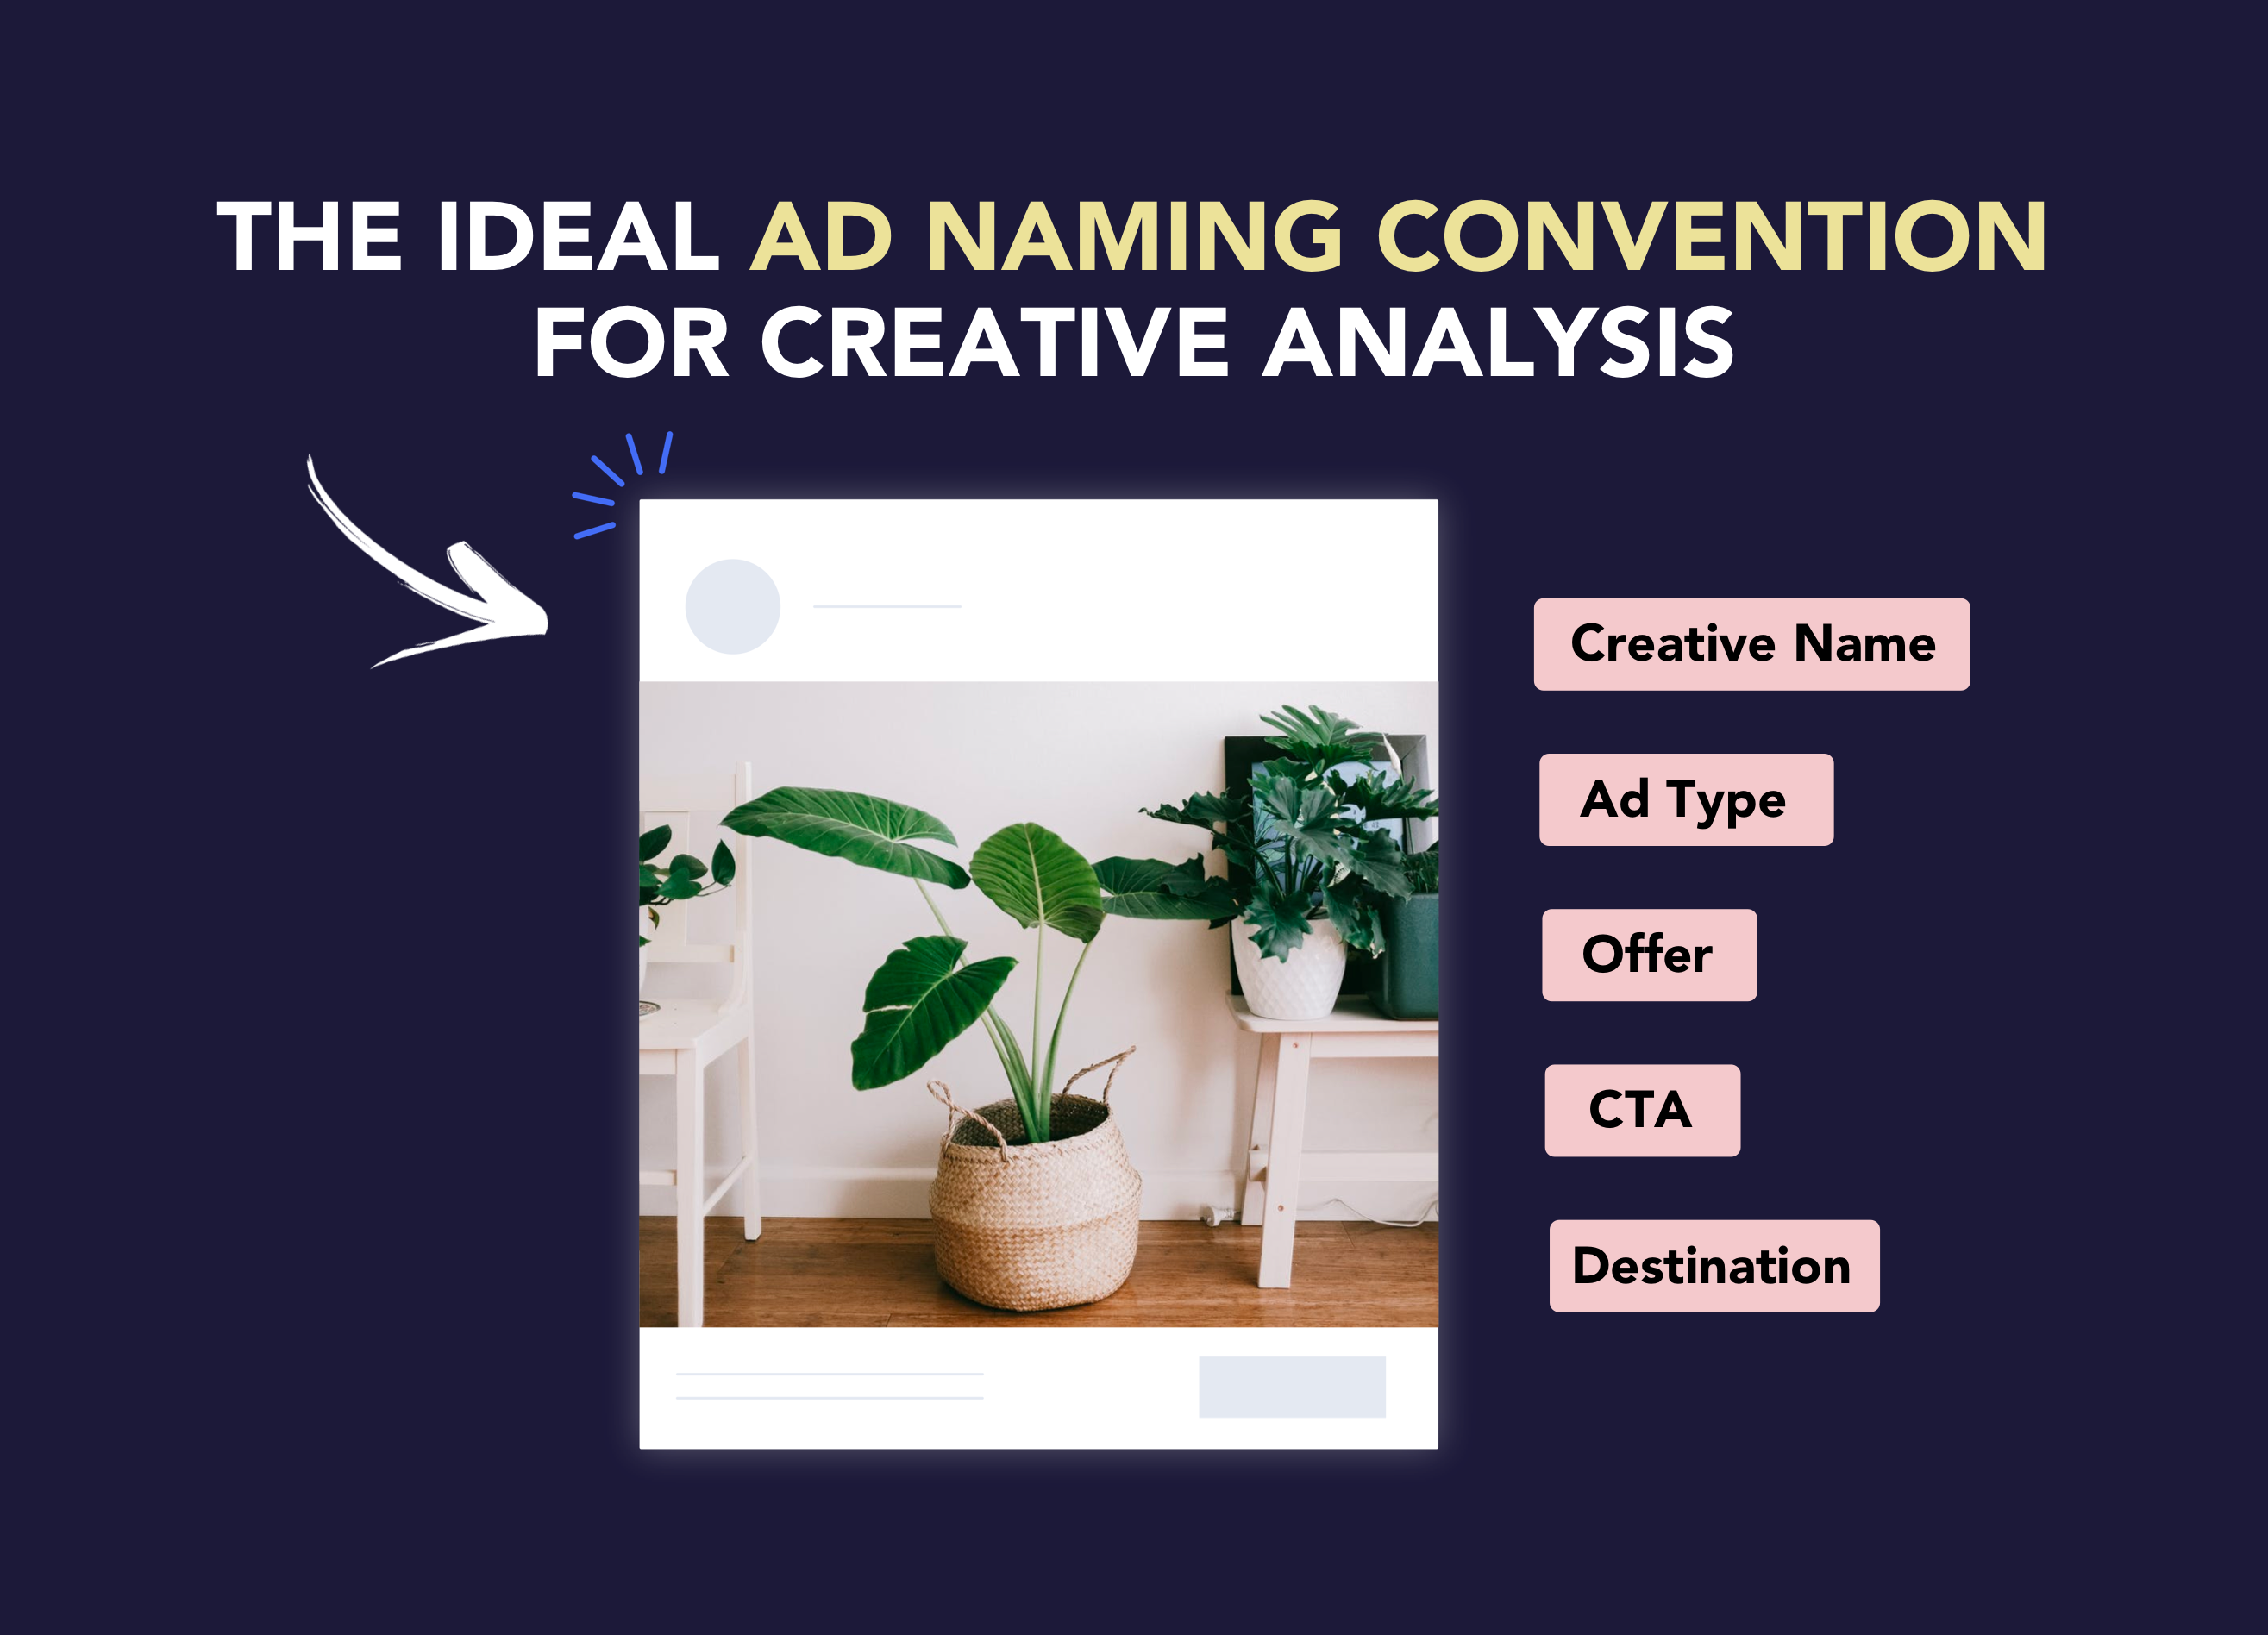 The Ideal Ad Naming Convention for Creative Analysis